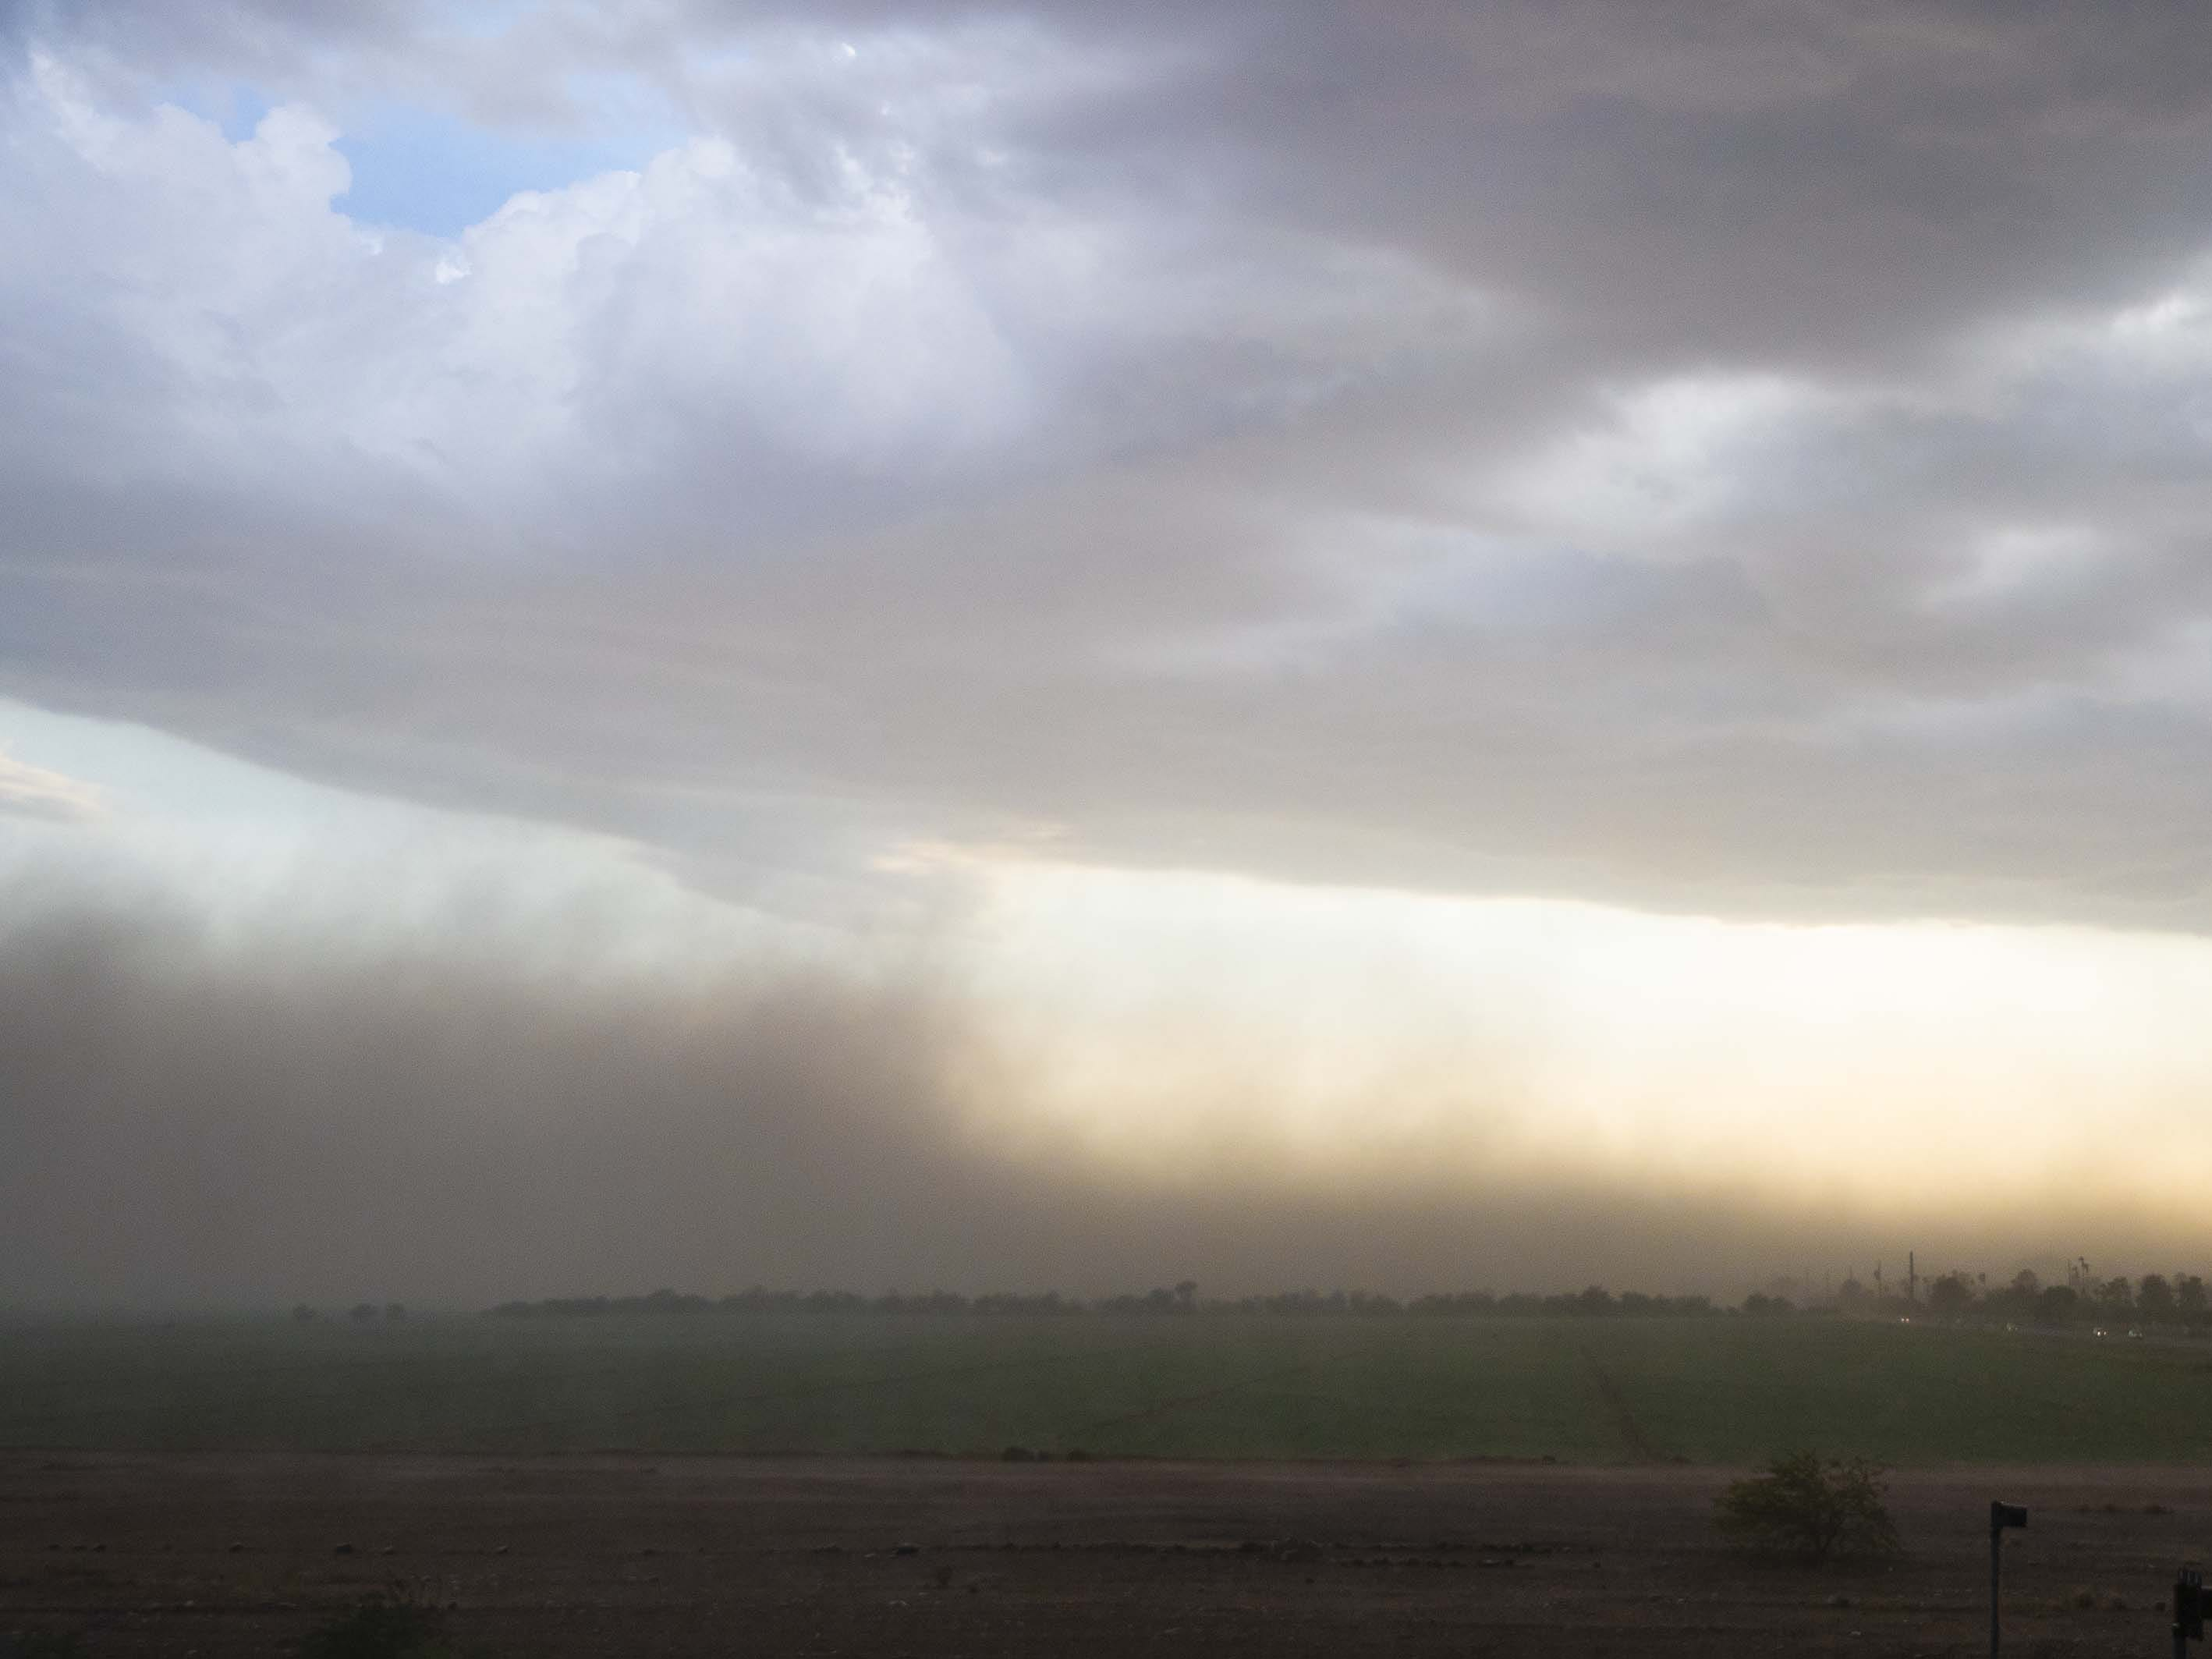 Blowing dust in a field near the Loop 101 and Loop 202, Ariz. during a monsoon storm August 12, 2018.